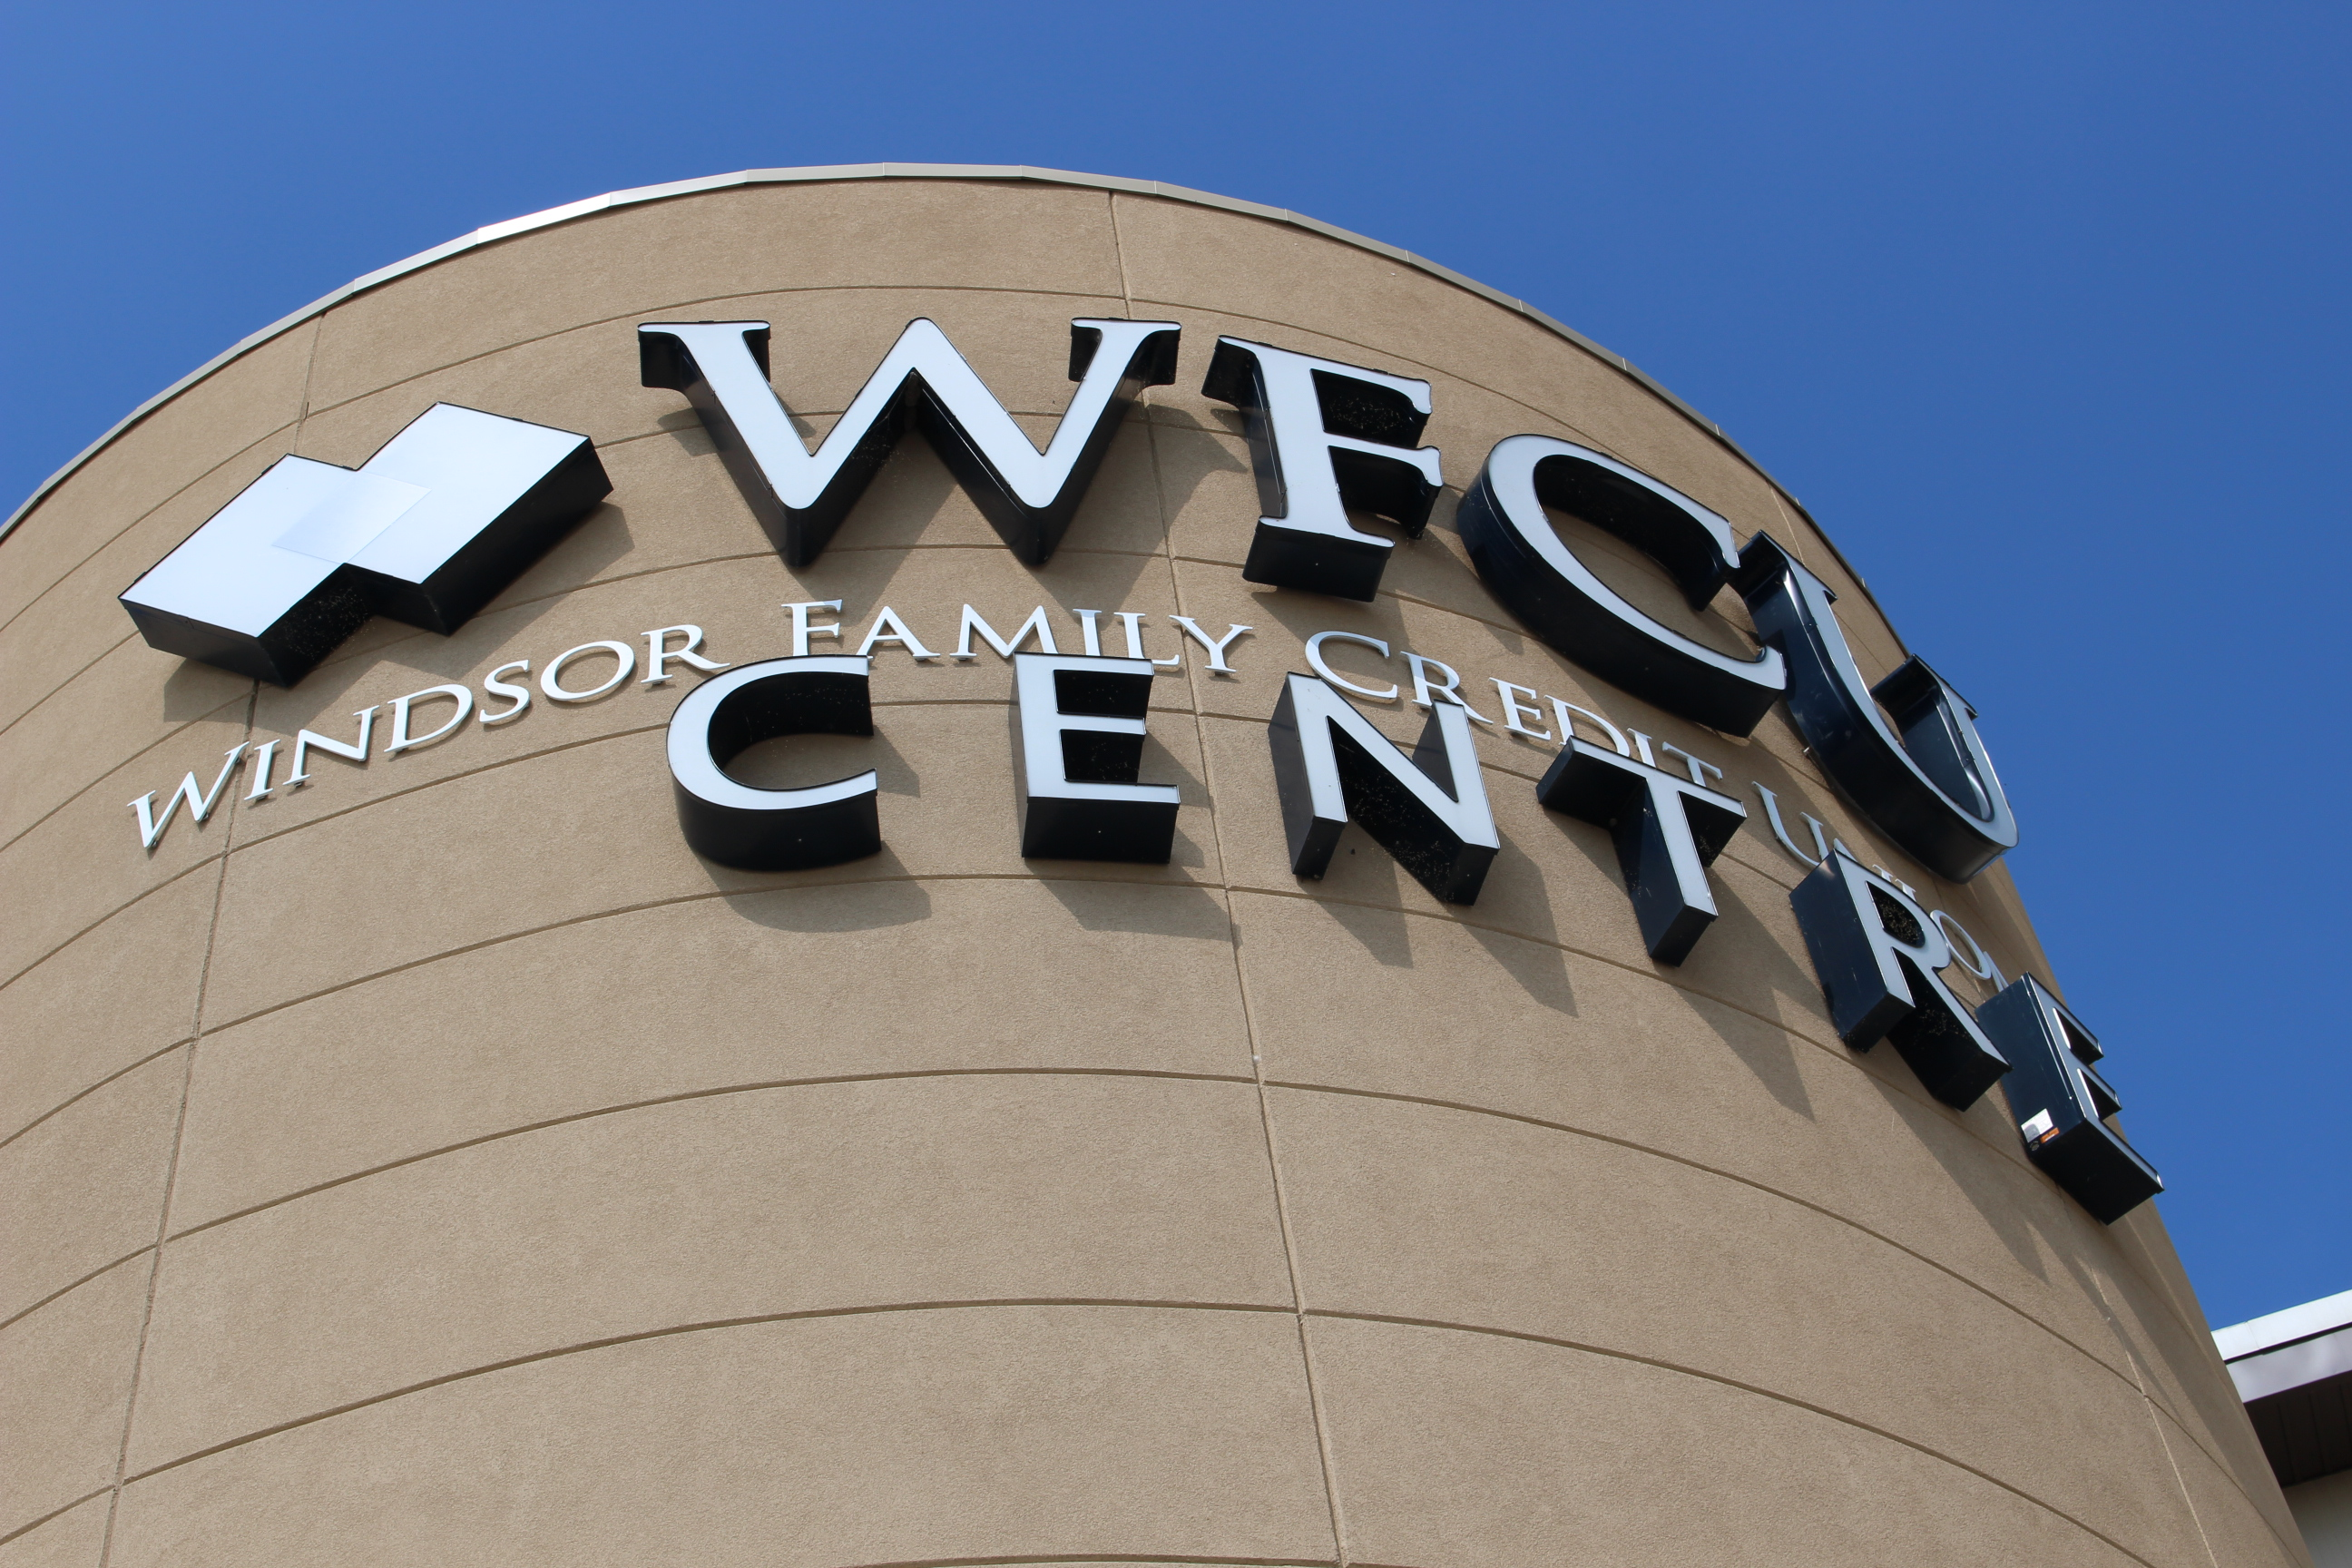 The WFCU Centre in Windsor, August 25 2014. (Photo by Adelle Loiselle.)